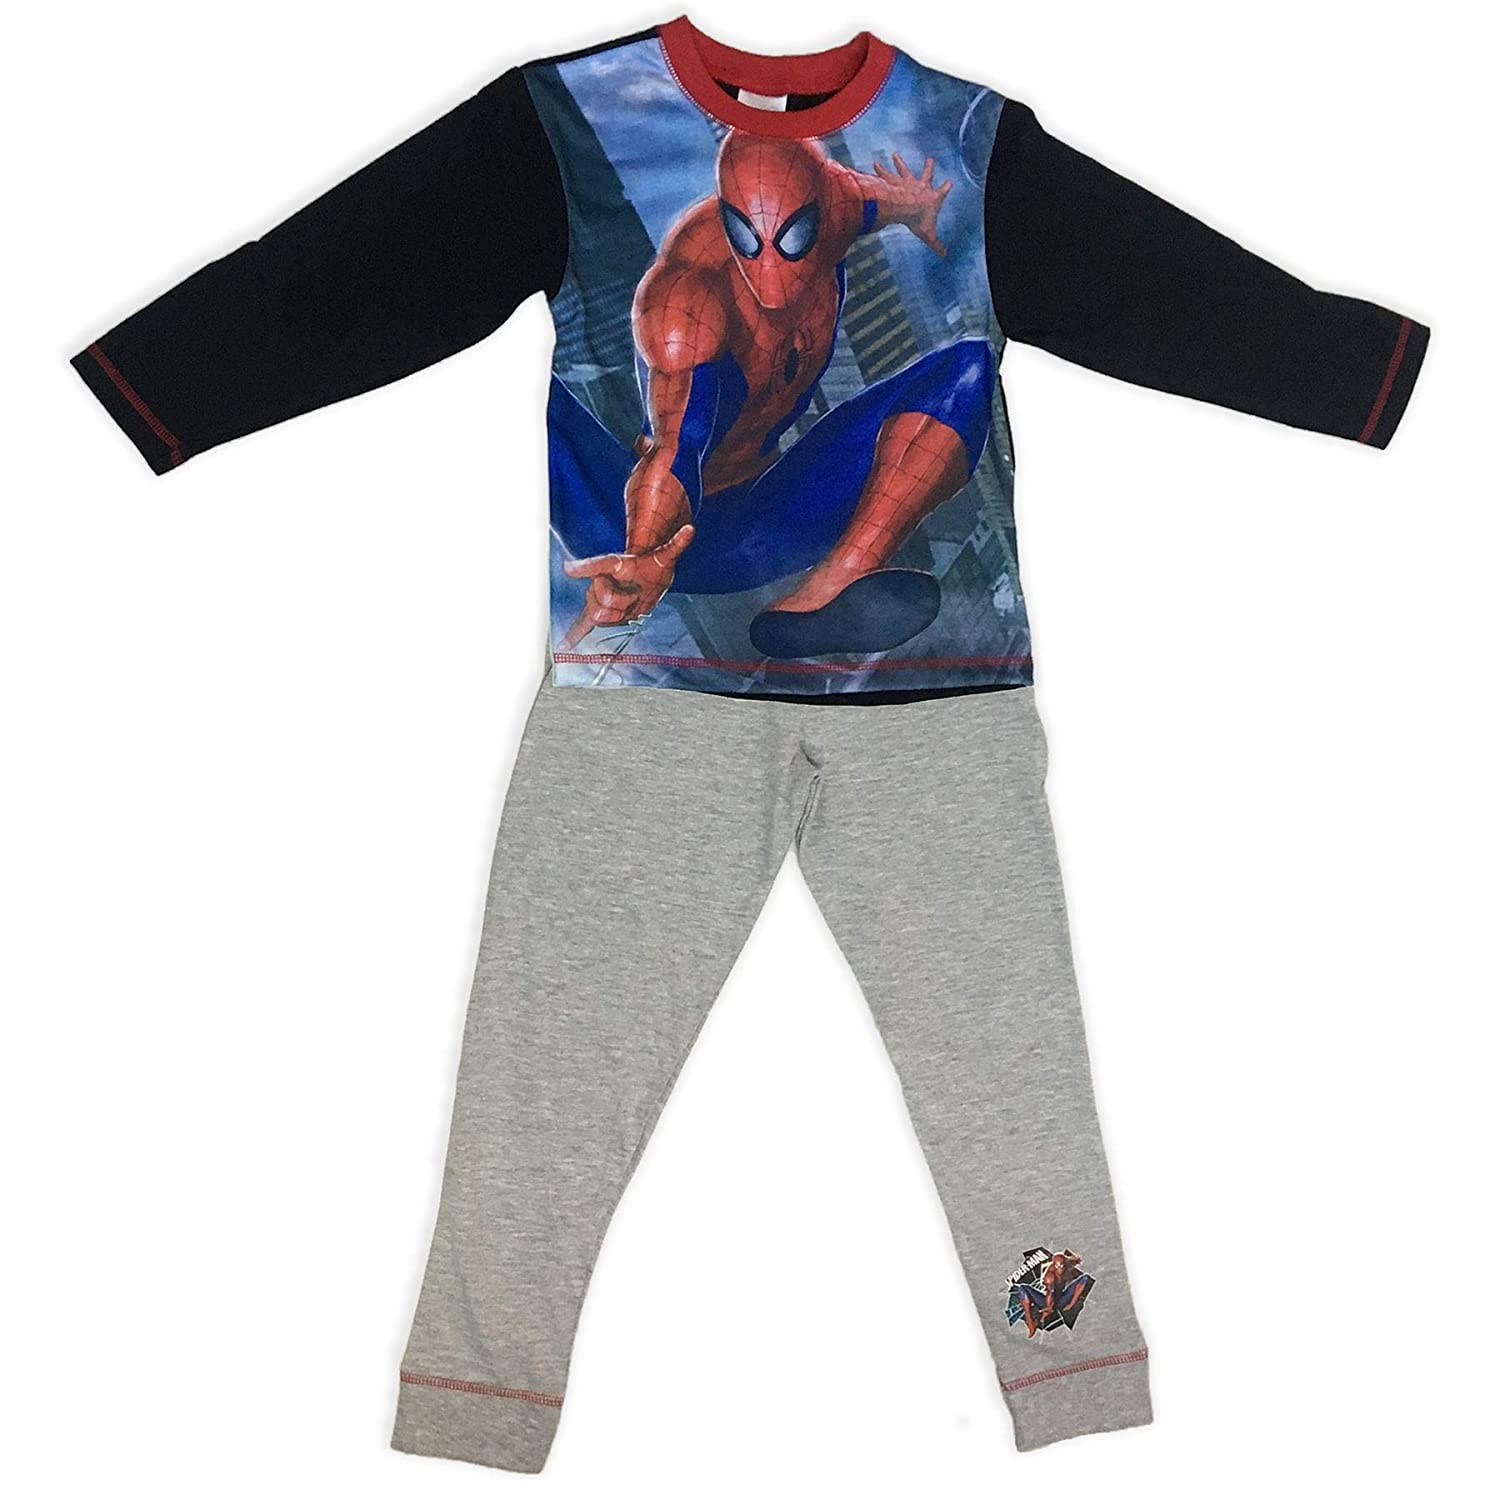 Amazon.com: Pijama para niños Ultimate Spiderman, color gris ...